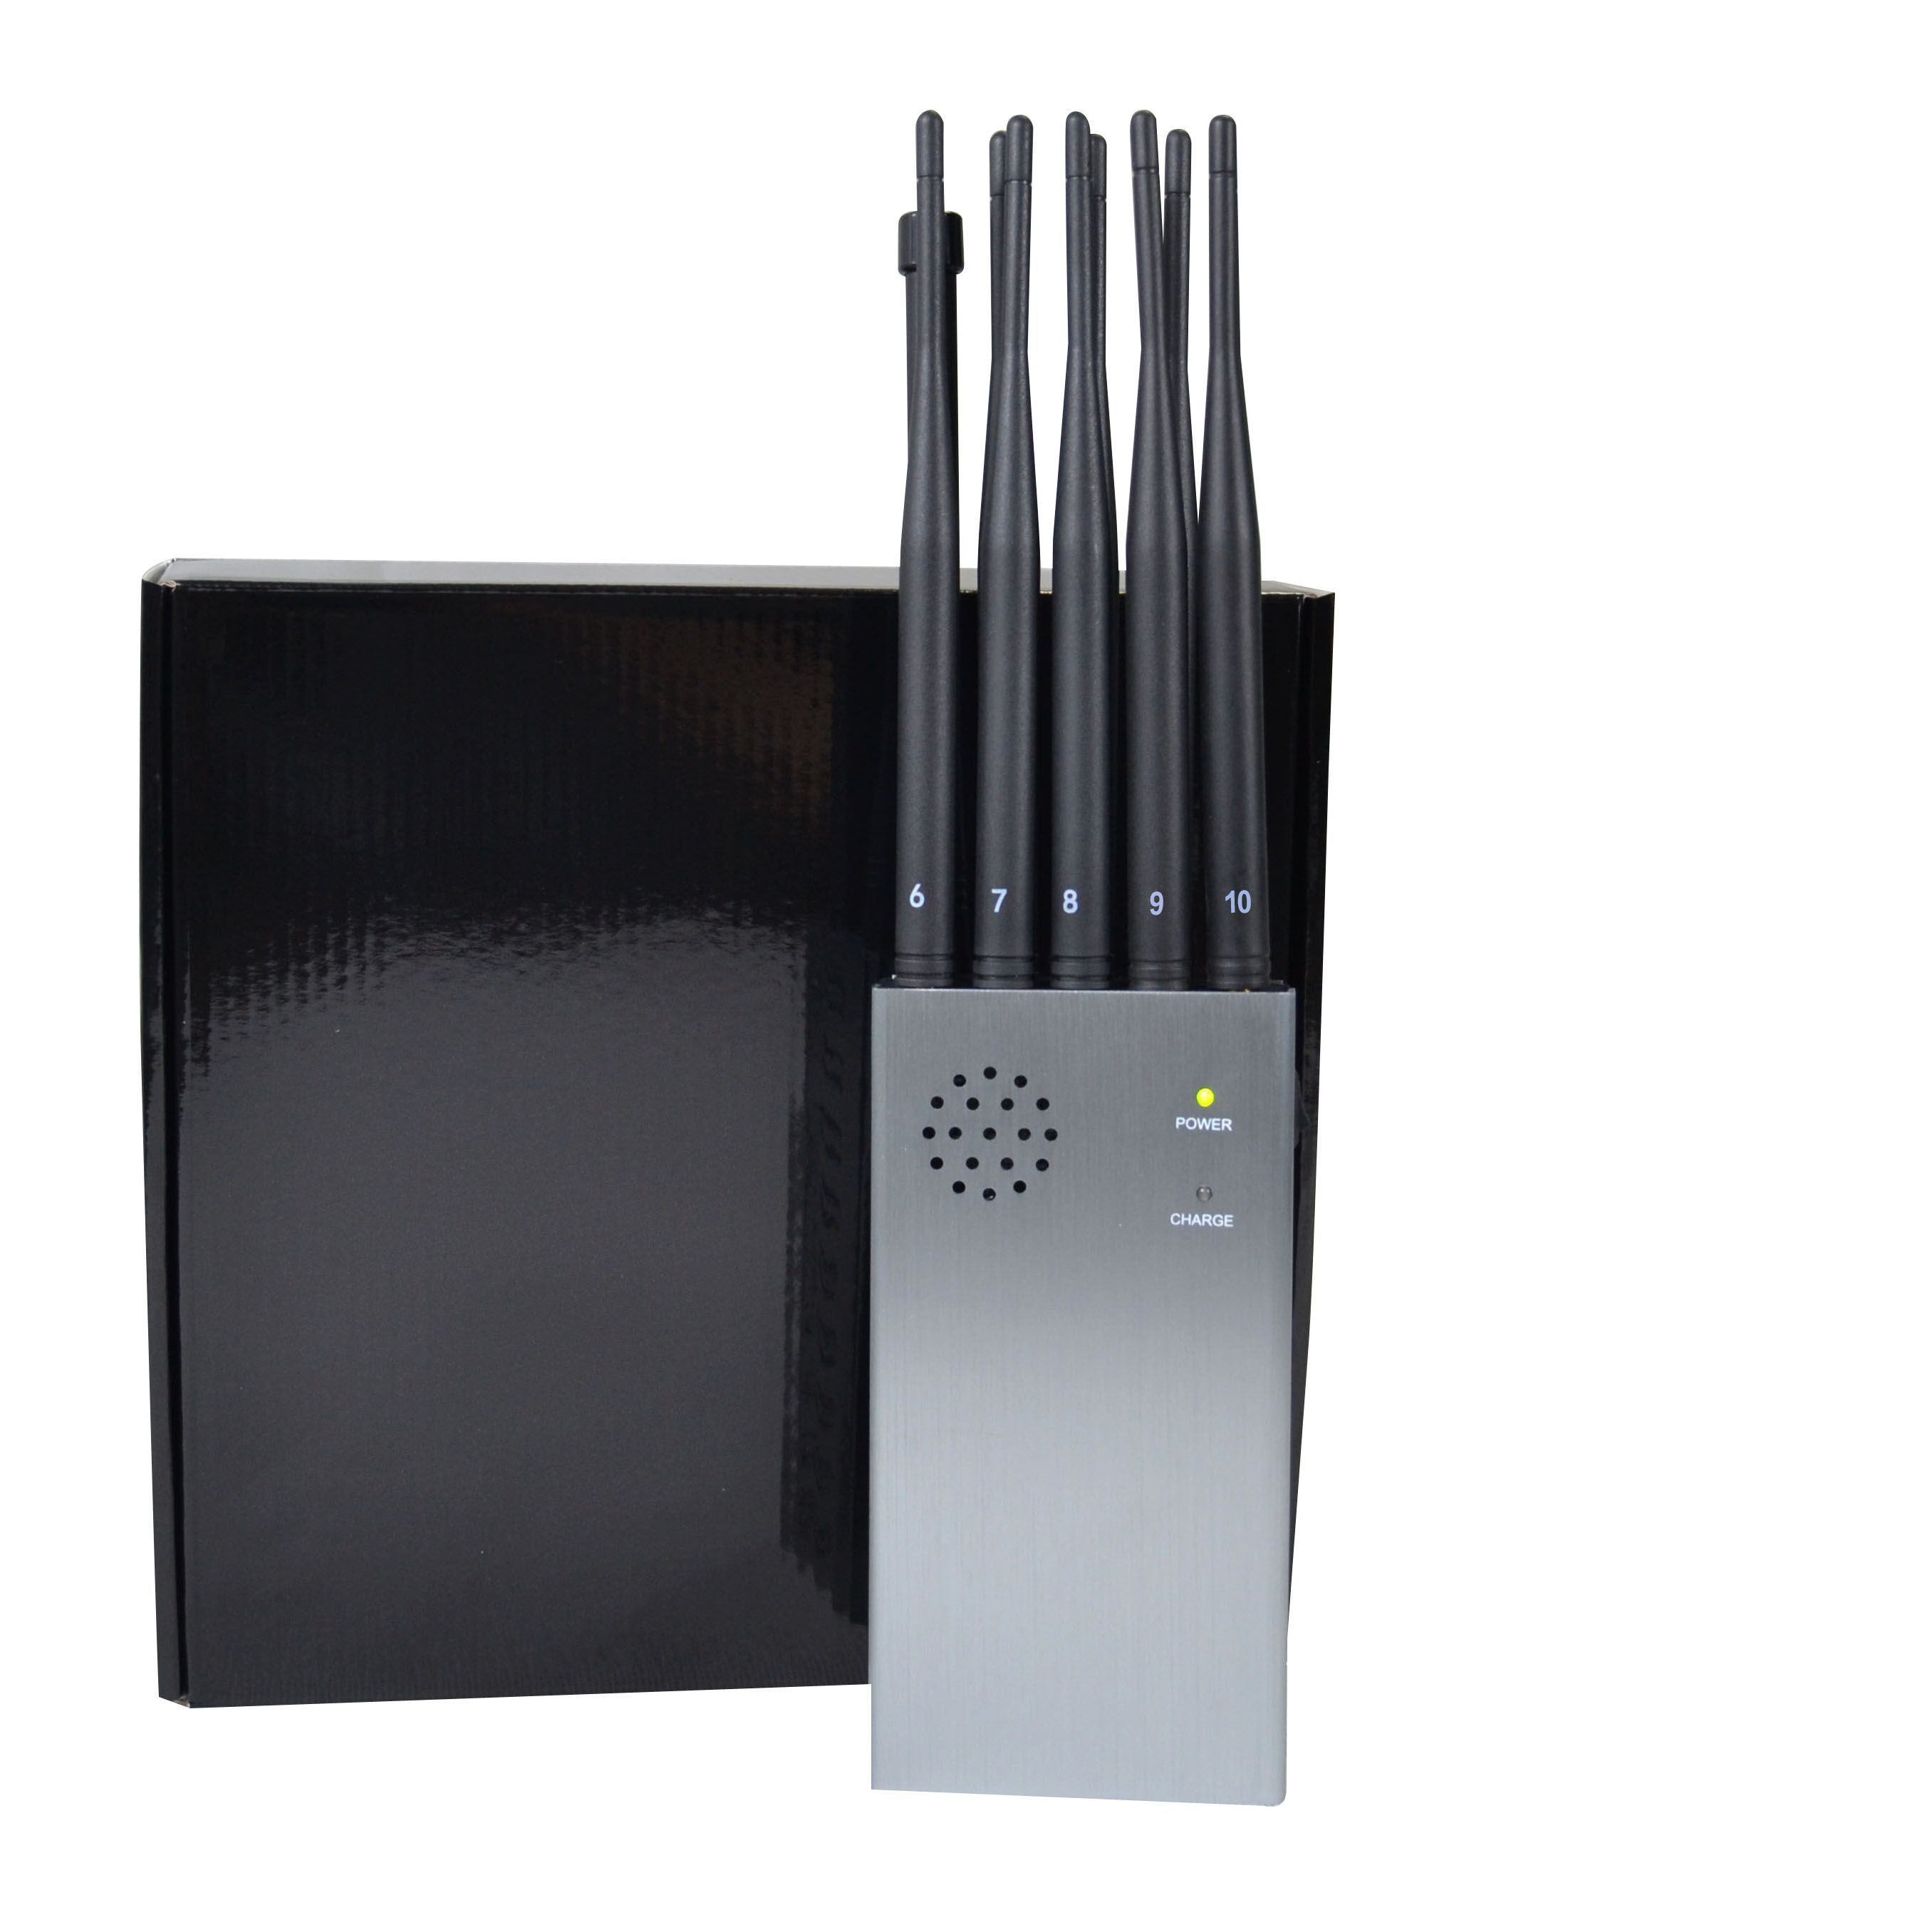 phone jammer x-wing expansion - China King Jammer with Portable 10 Antennas Including 2g 3G 5g 4G WiFi, GPS Remote Control Lojack Signals - China 8000mA Battery Jammer, Large Volume Power Signal Blocker